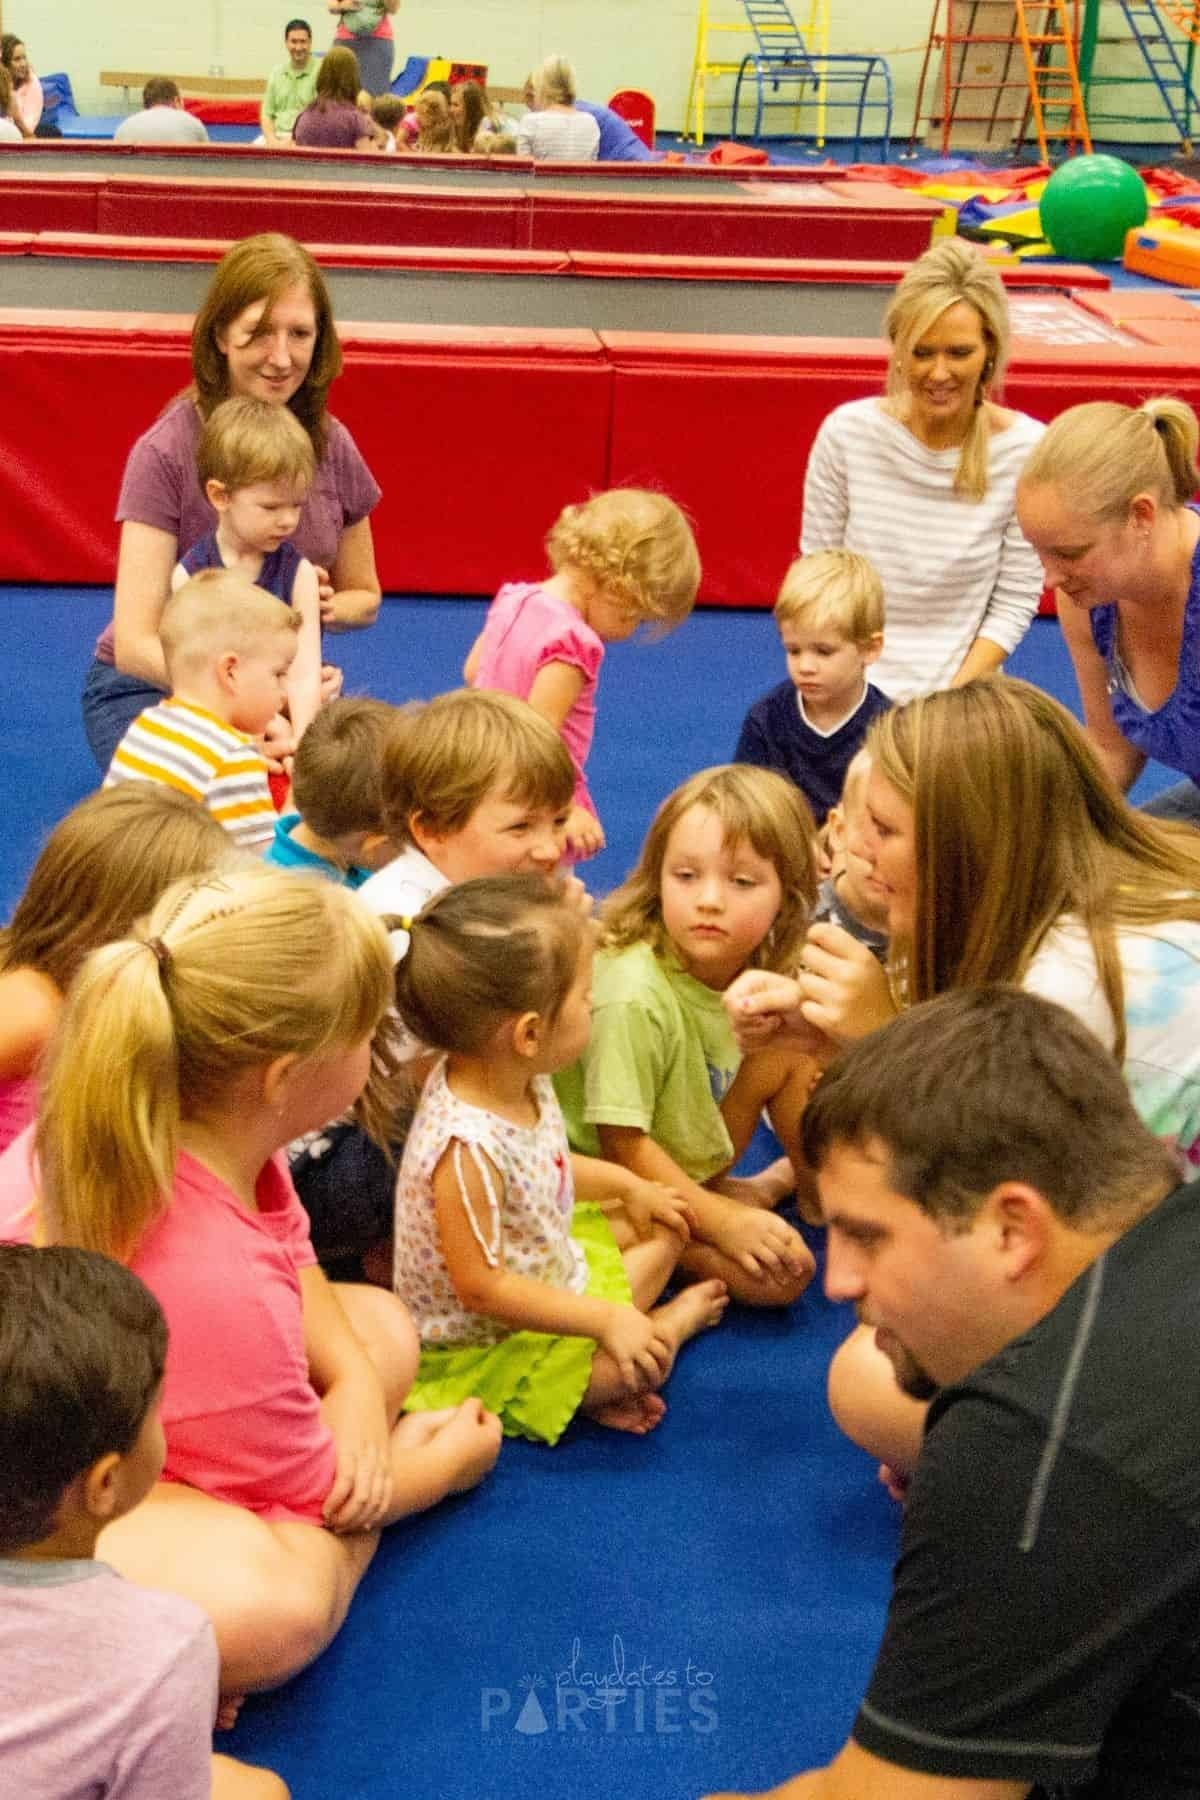 children sitting at a play gym with an instructor leading group play